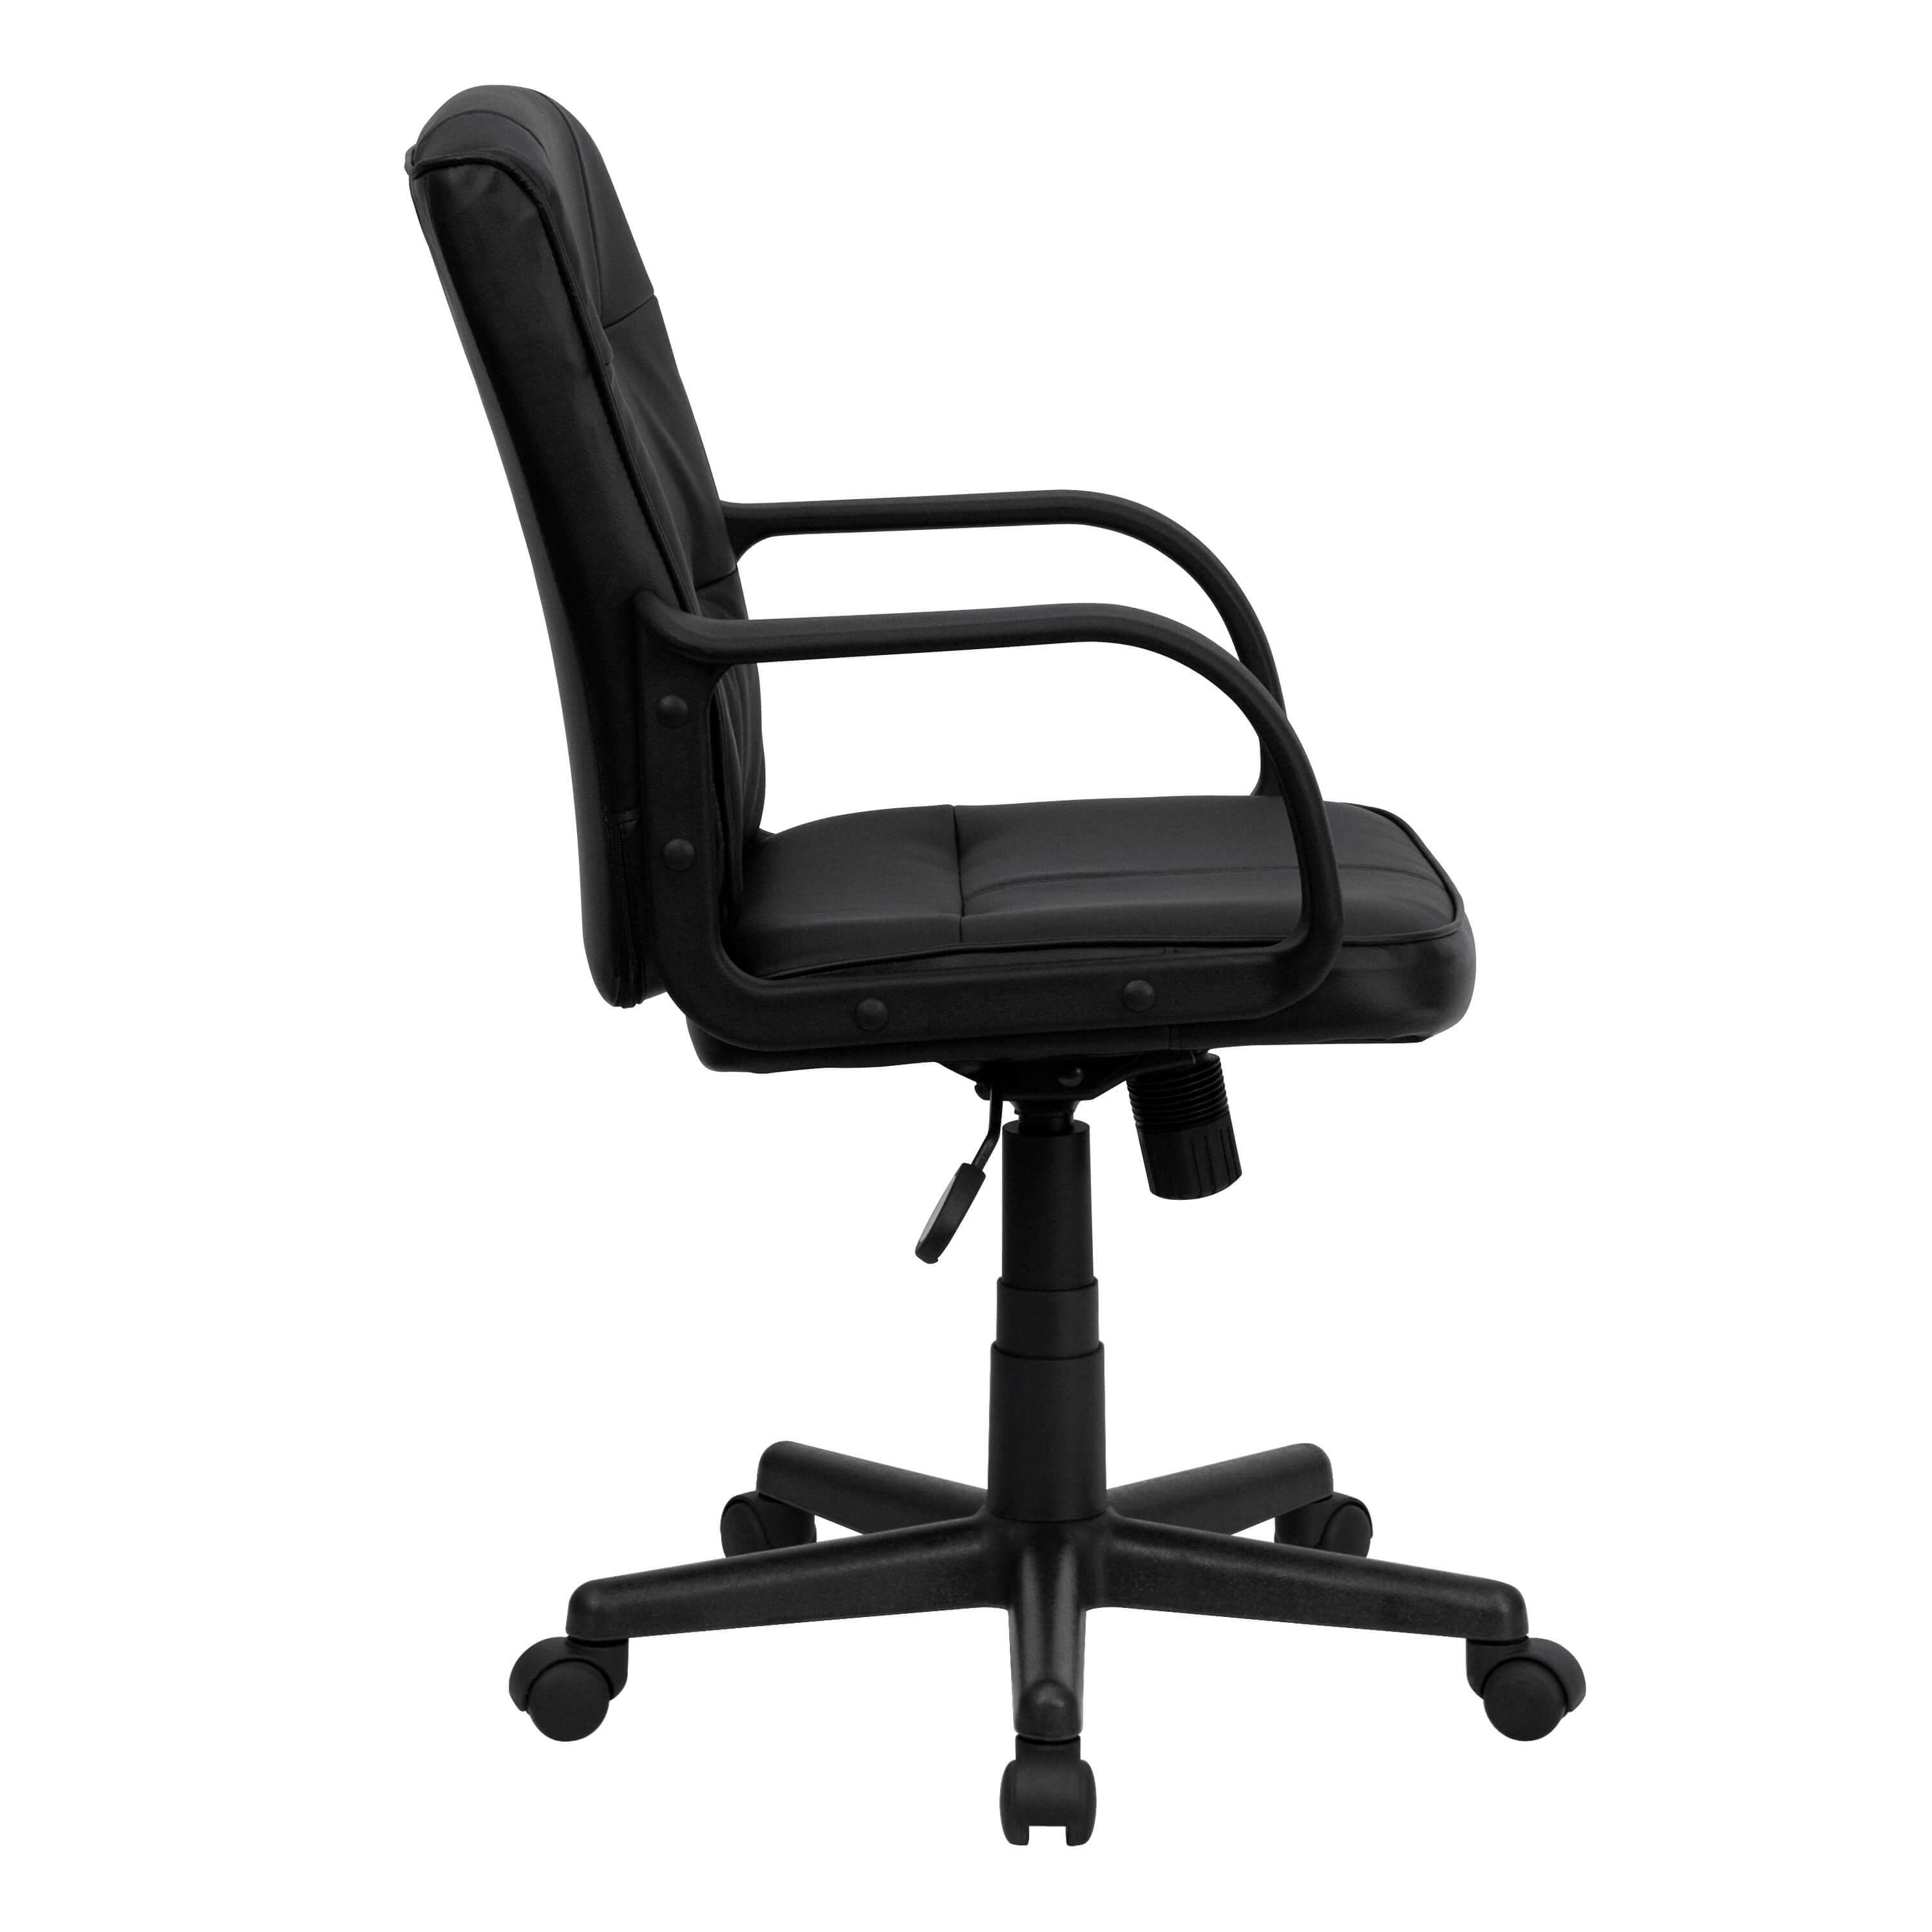 dorado office chair swing with stand outdoor black leather side view